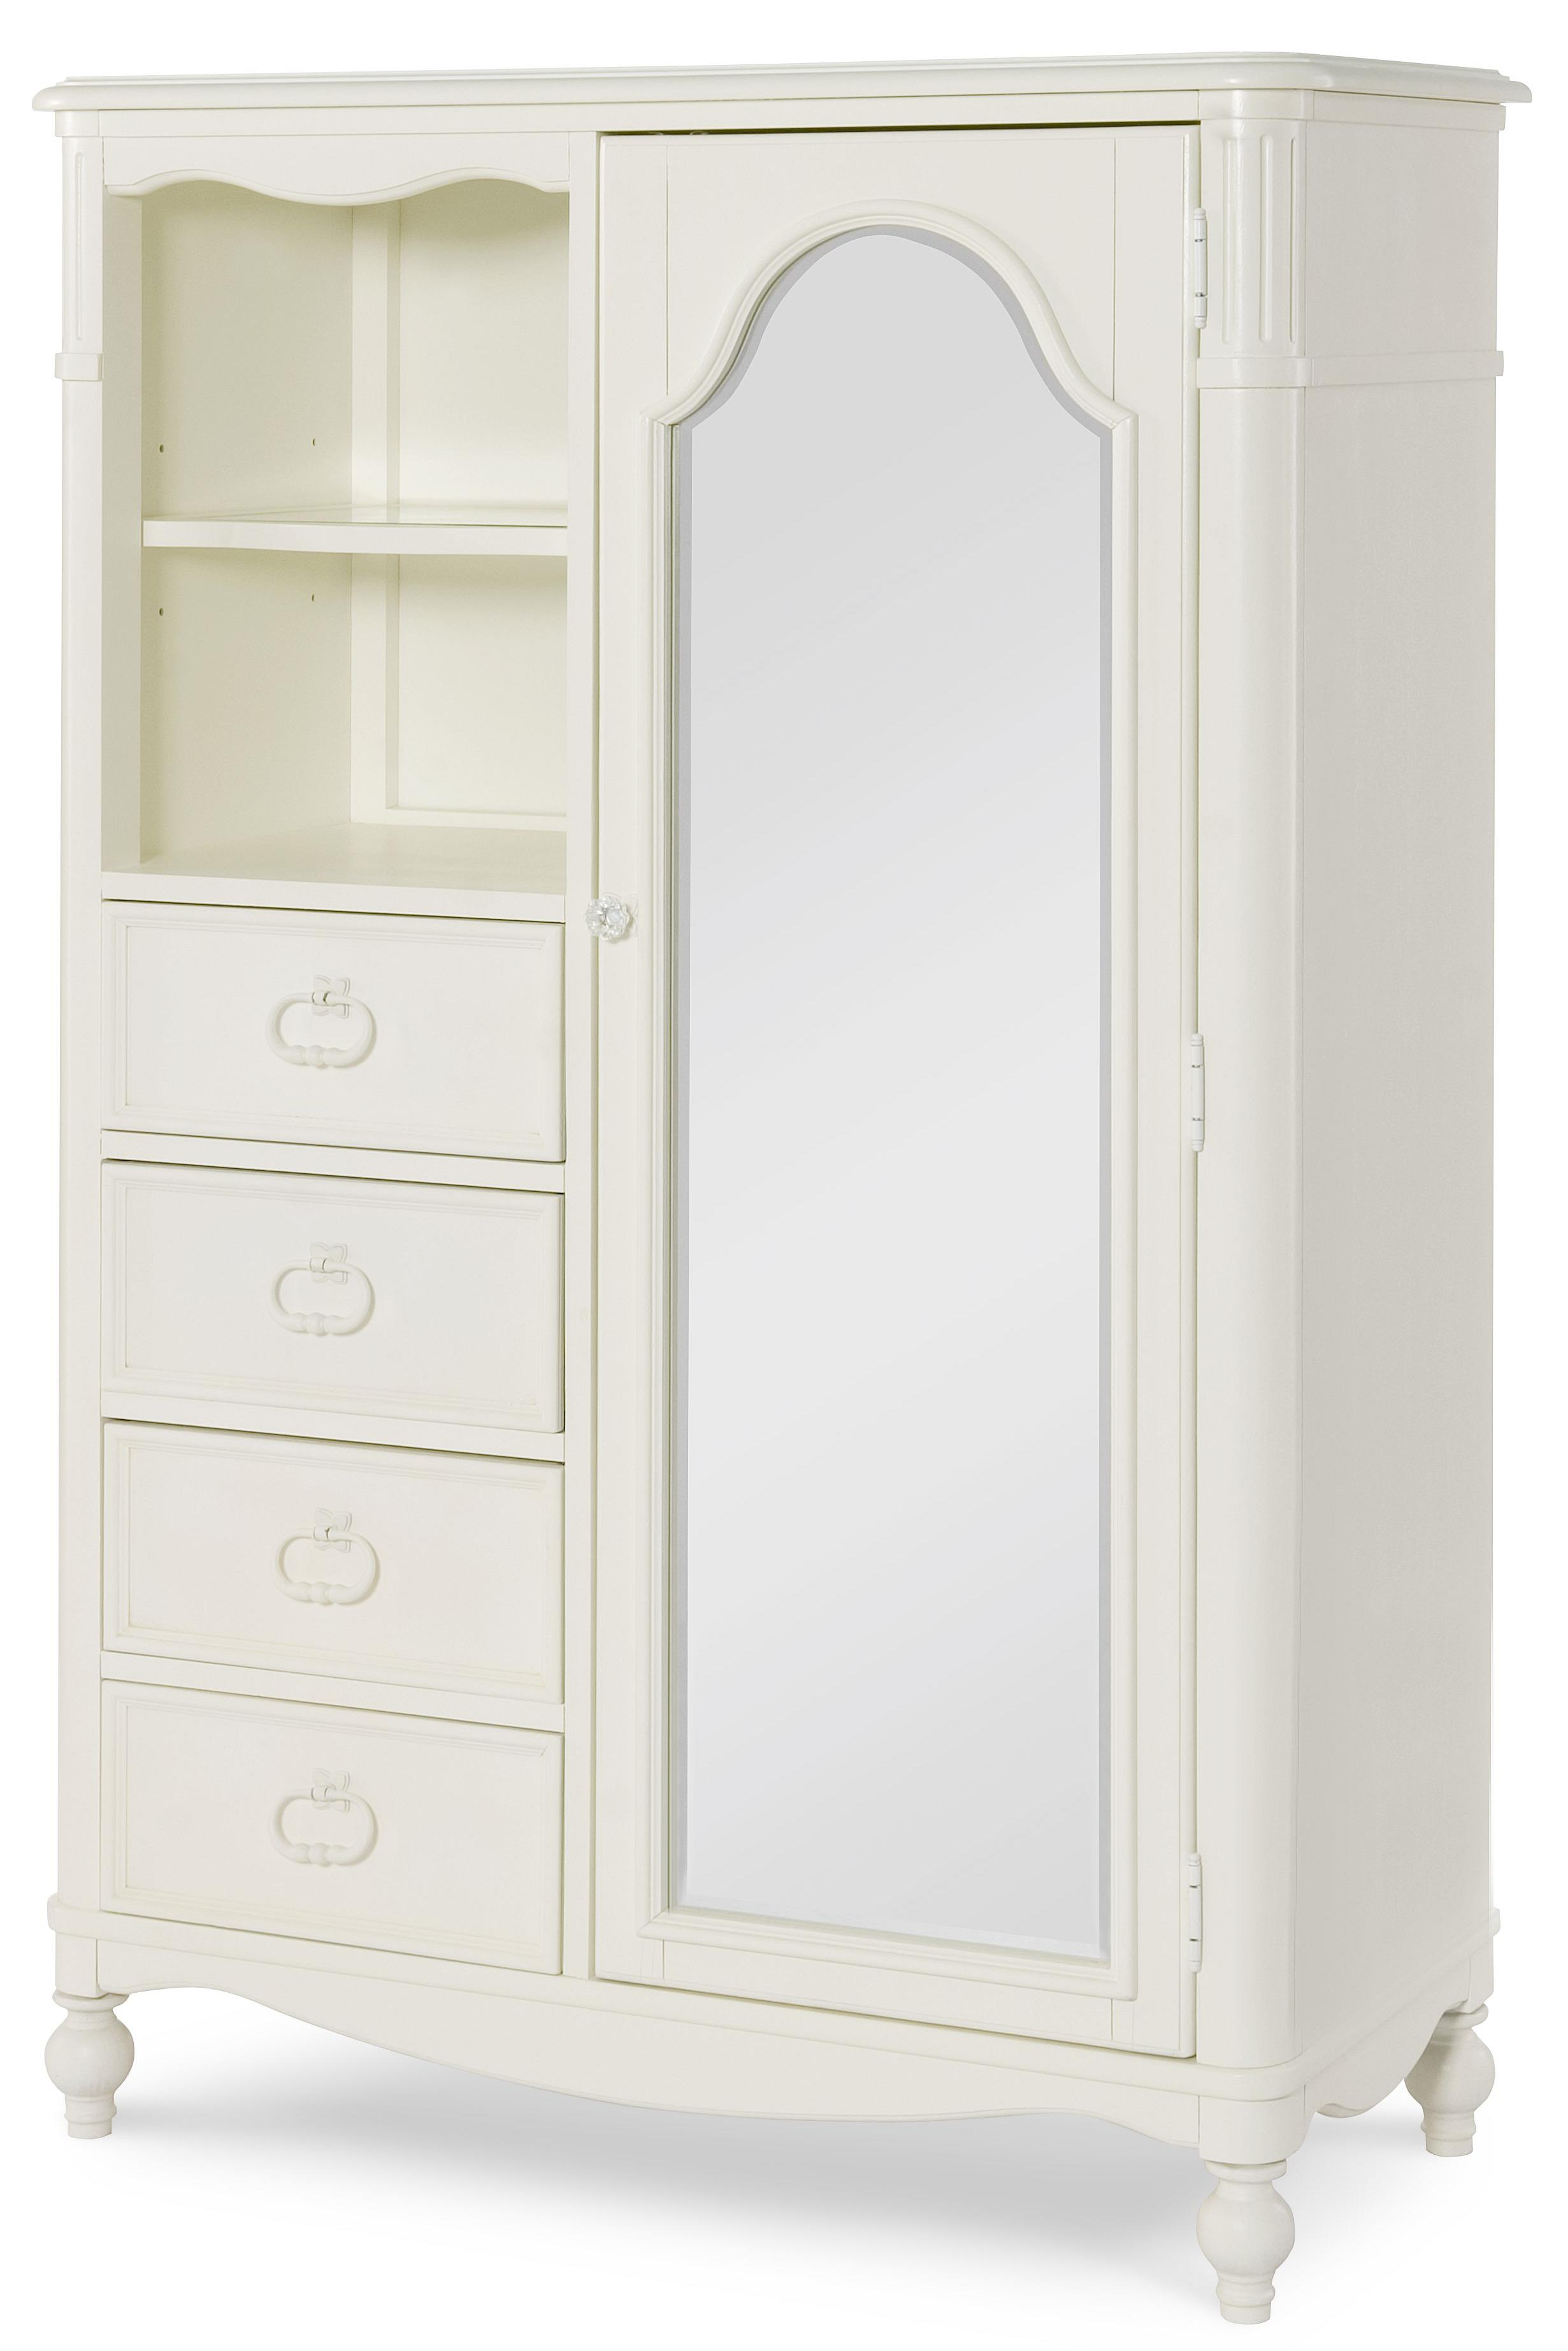 Harmony Mirrored Door Chest  by Legacy Classic Kids at Suburban Furniture